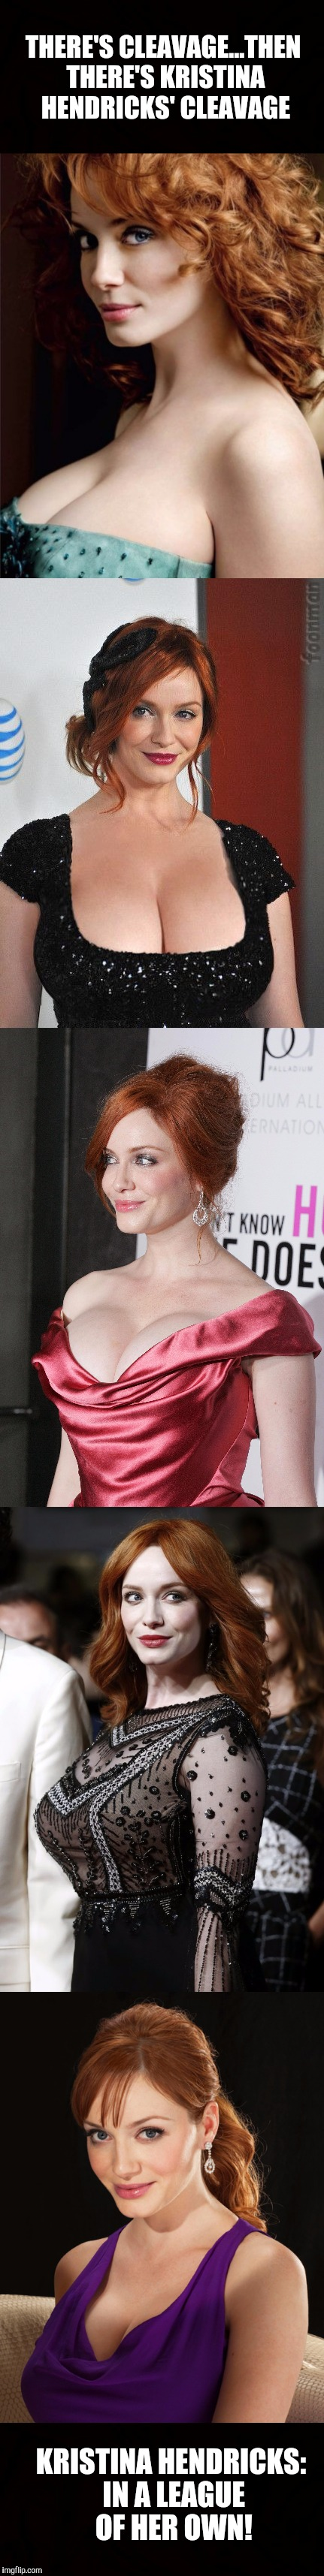 Kristina Hendricks is a goddess!  Love her natural boobs, pale skin, and ginger hair!  | THERE'S CLEAVAGE...THEN THERE'S KRISTINA HENDRICKS' CLEAVAGE KRISTINA HENDRICKS: IN A LEAGUE OF HER OWN! | image tagged in cleavage week,boobs,kristina hendricks,memes,sexy women,cleavage | made w/ Imgflip meme maker